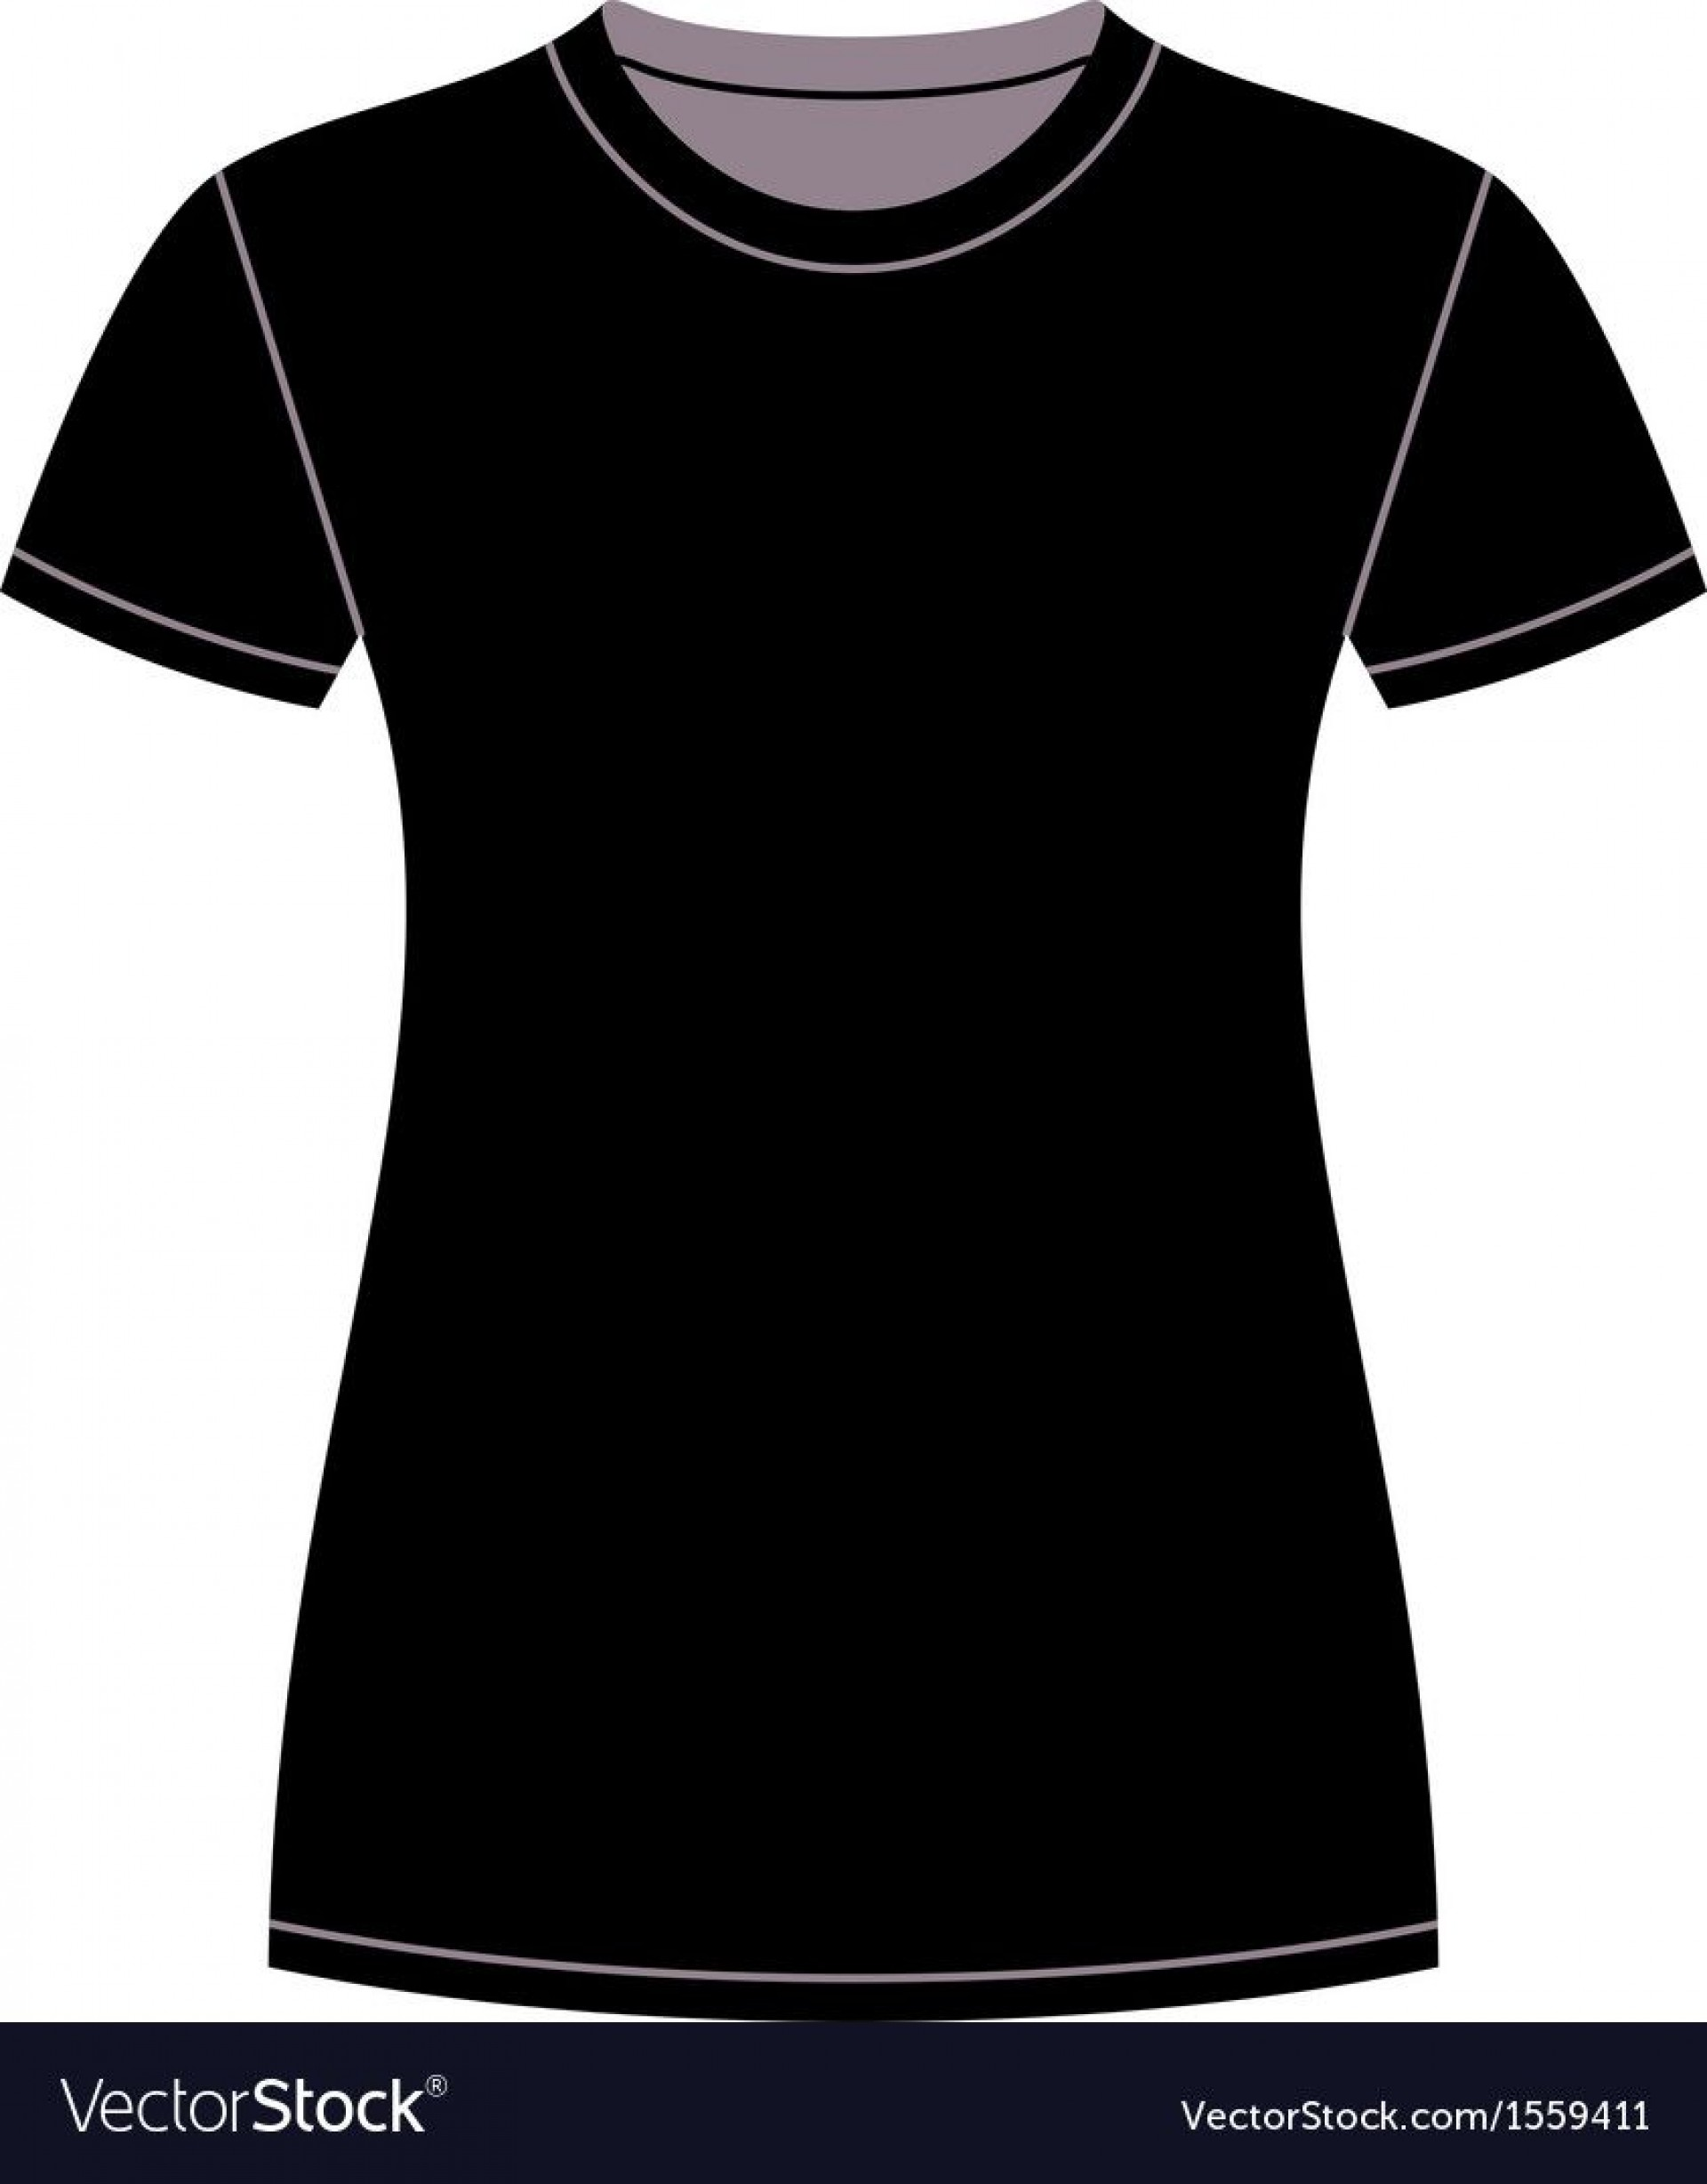 007 Phenomenal T Shirt Template Design Highest Clarity  Psd Free Download Editable1920